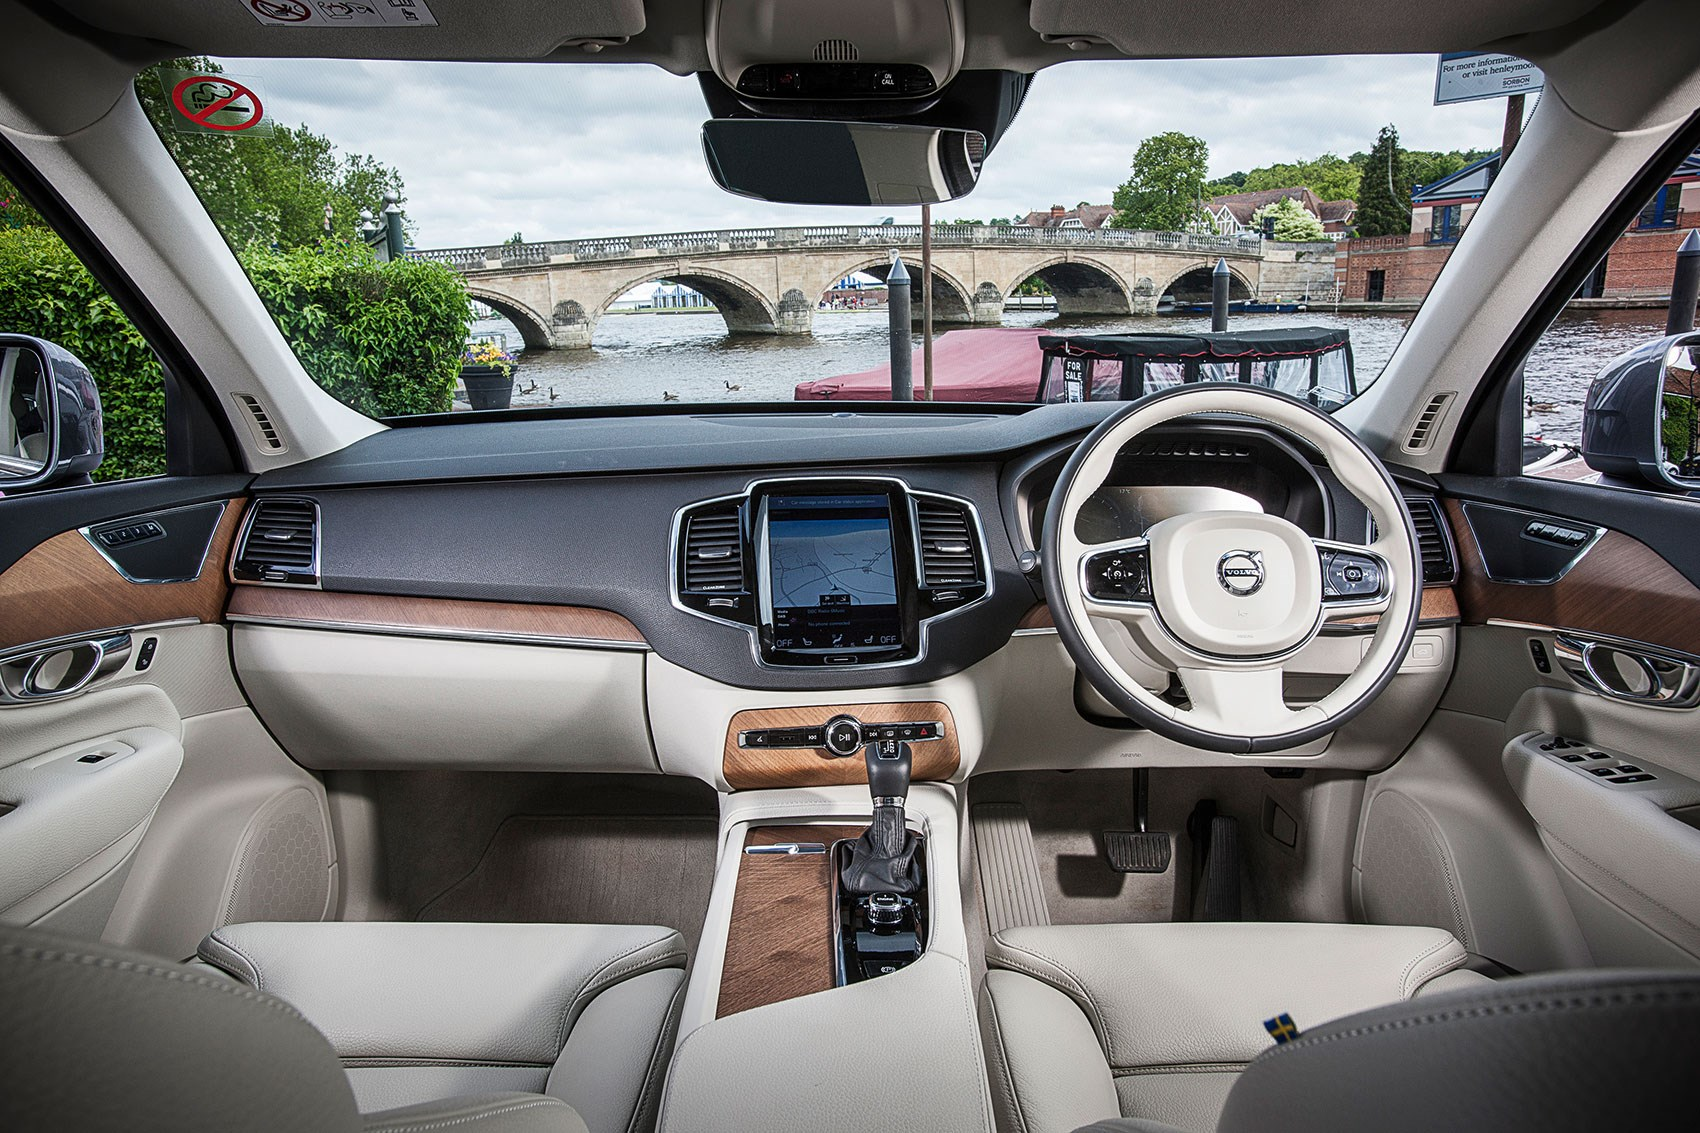 Luxury caravan with full size sports car garage from futuria -  Volvo Xc90 Cabin Tablet Like Screen Is Biggest This Side Of A Tesla And Volvo Has Trusted It With Almost Every Function